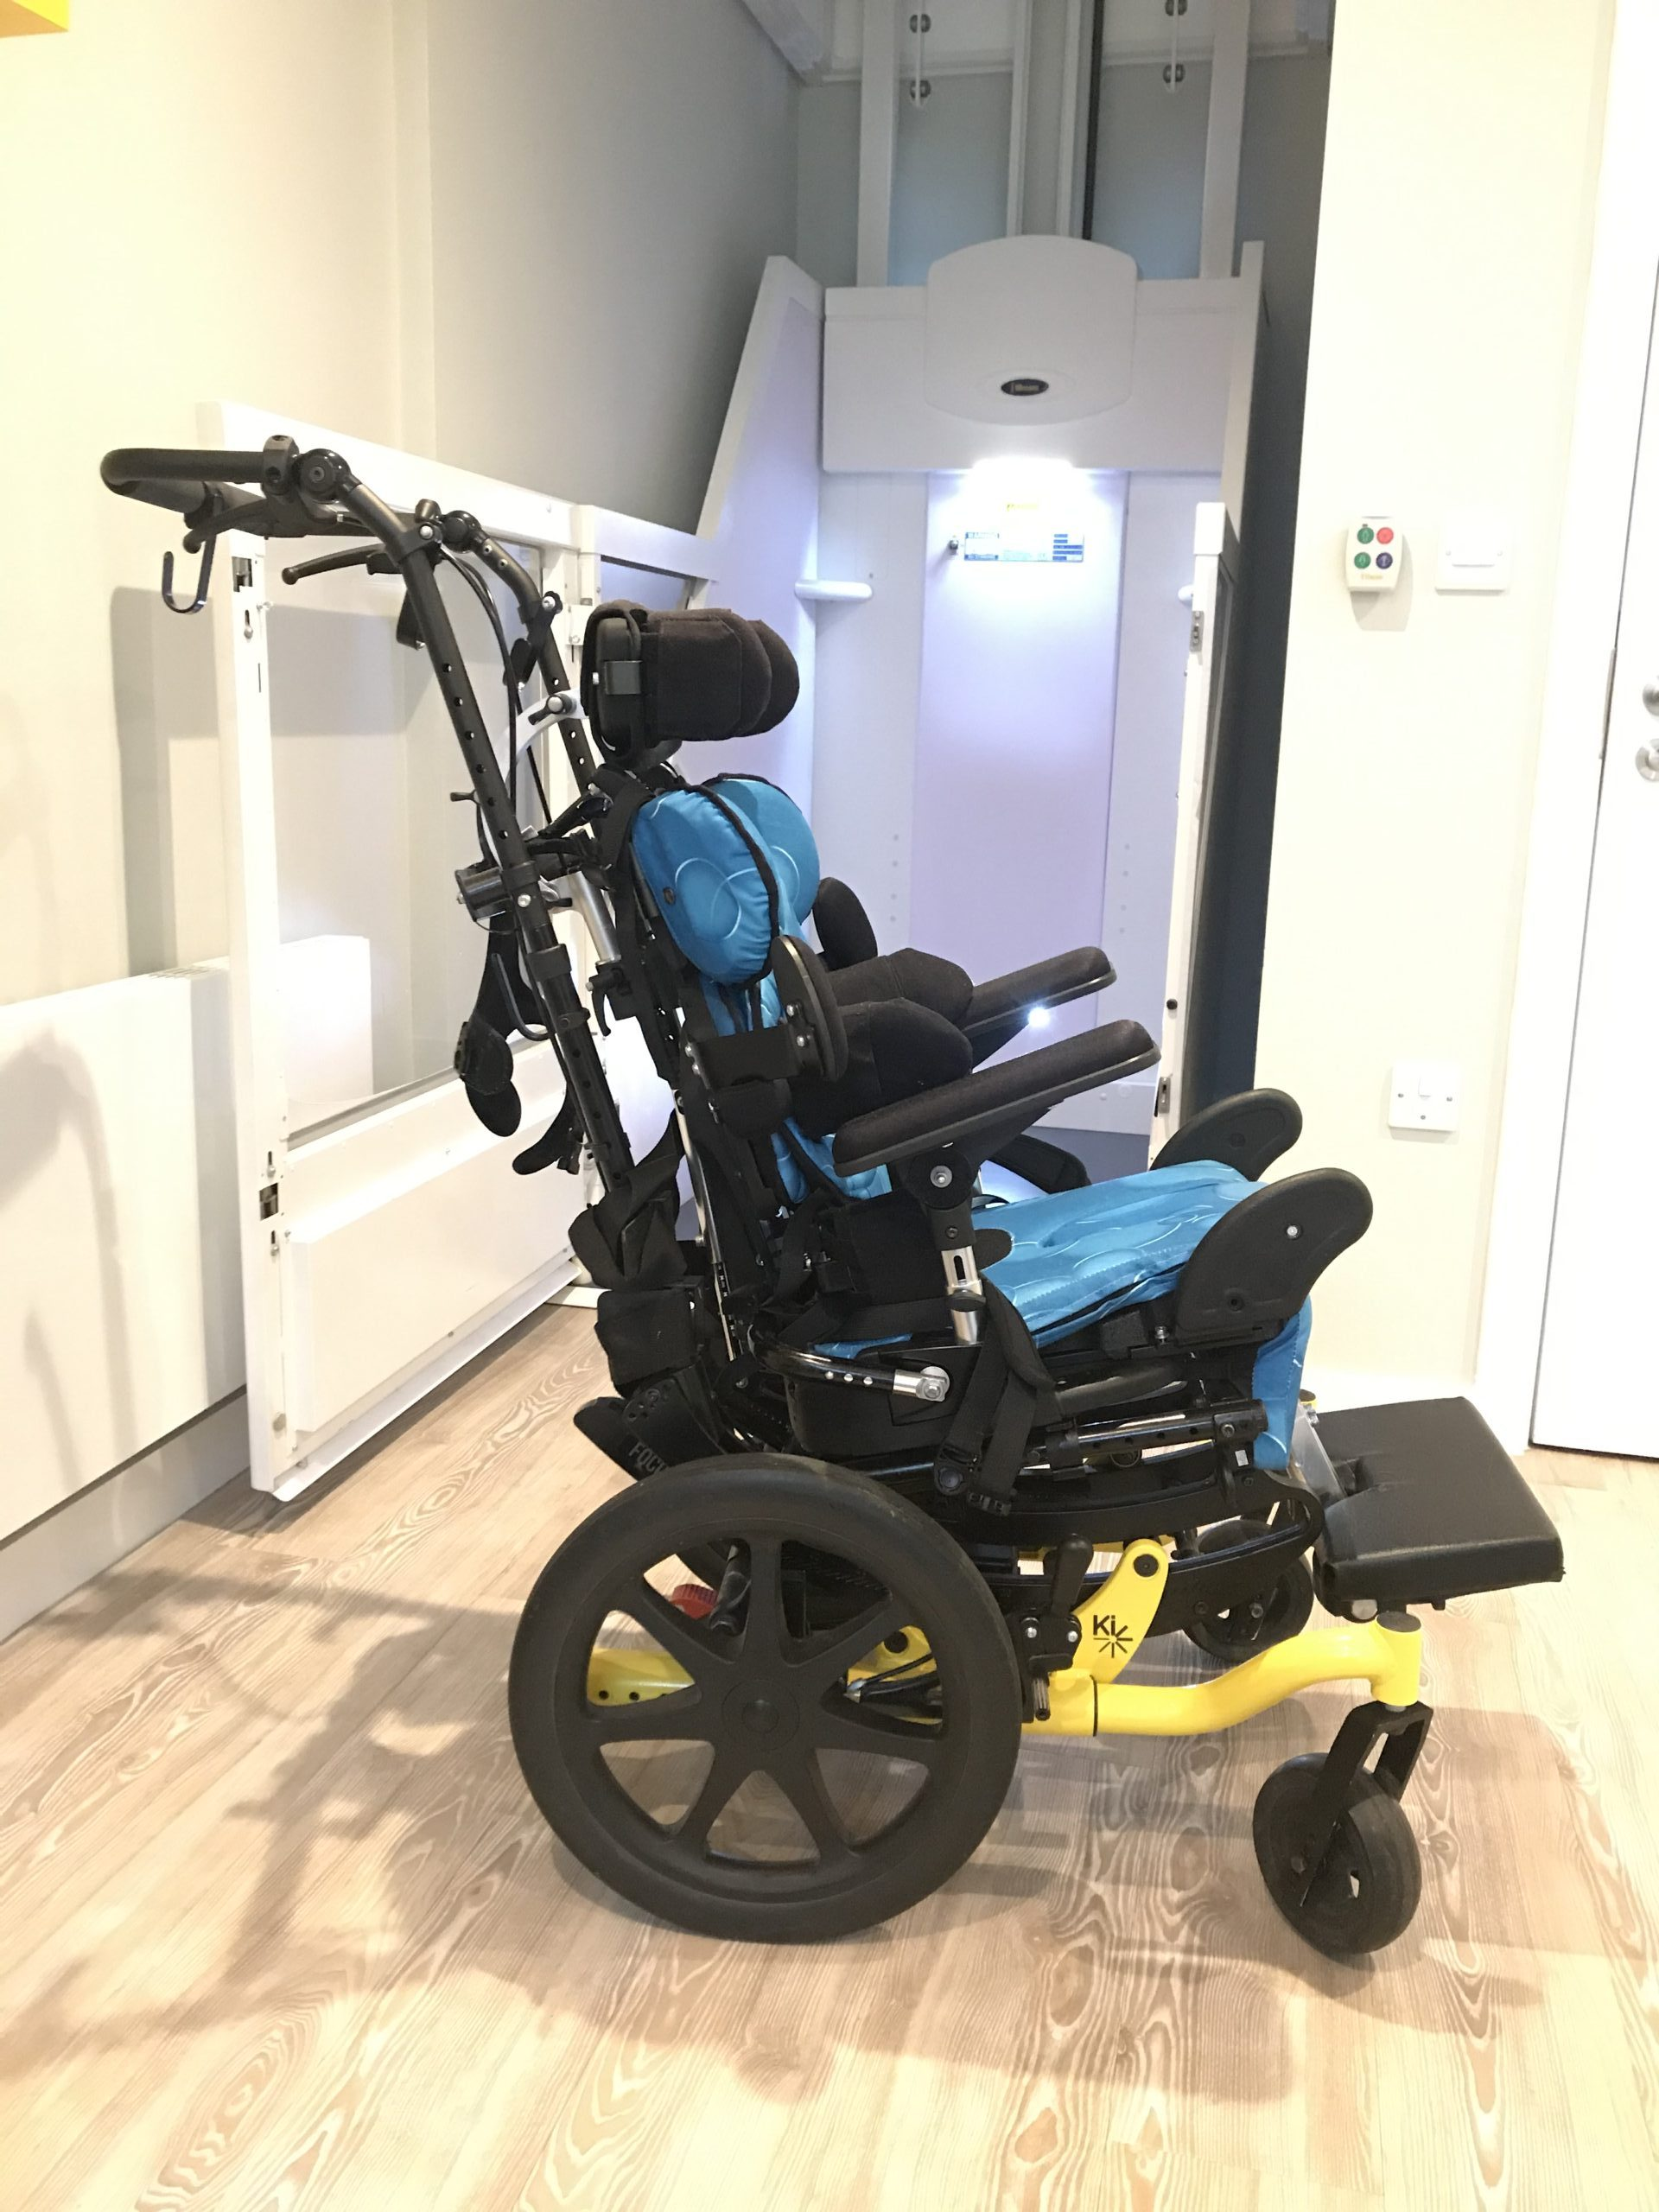 KI FOCUS TILT IN SPACE CHAIR WITH LECKEY MYGO SIZE 1 SEATING (ITEM 1004)